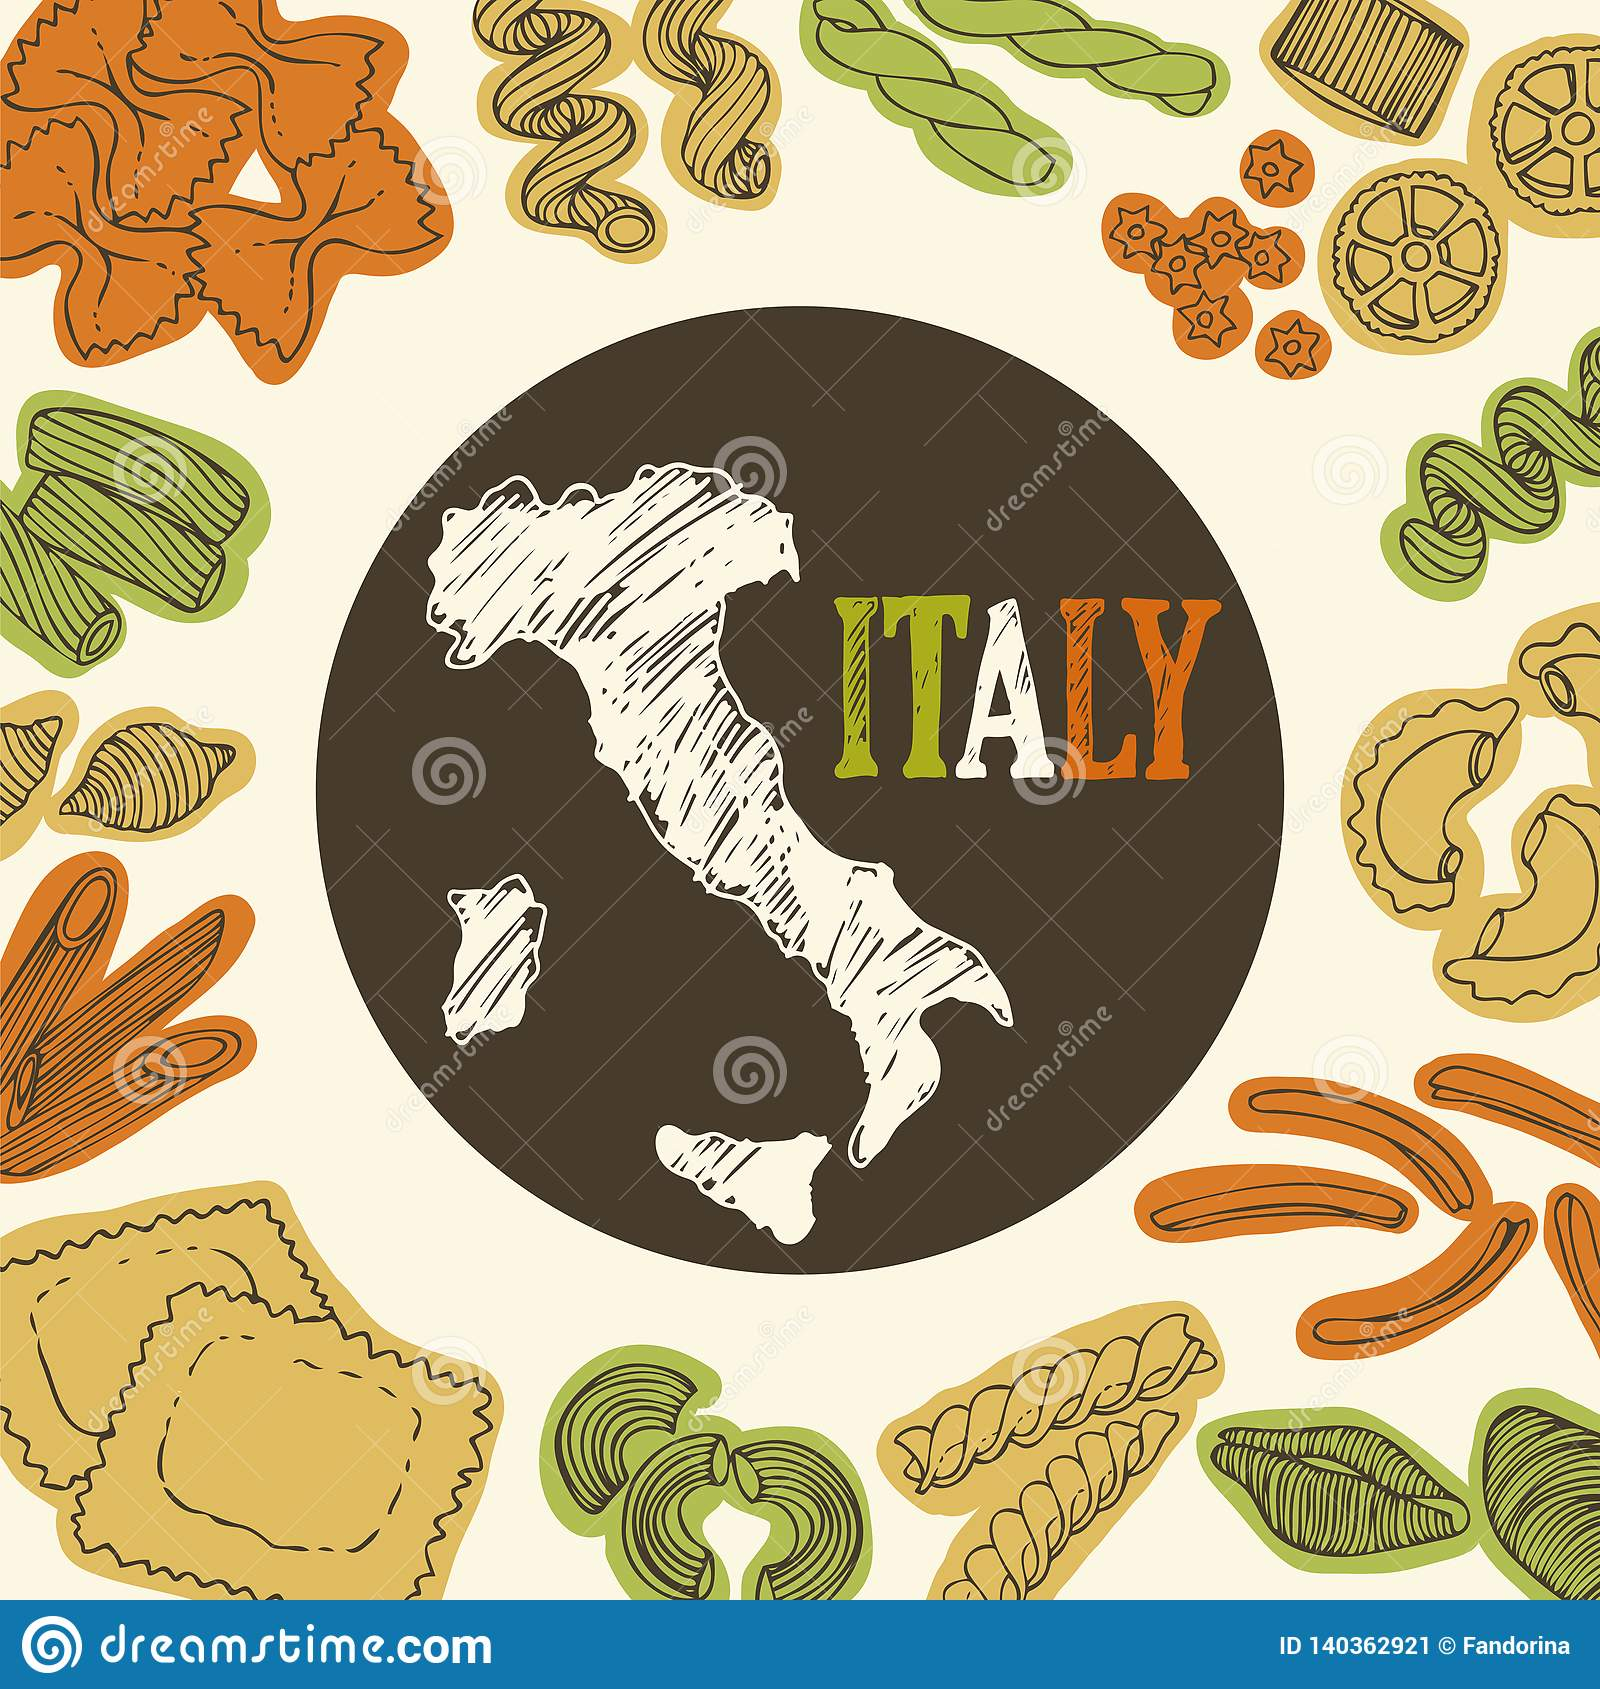 Italian Pasta Food Background Stock Vector Illustration Of